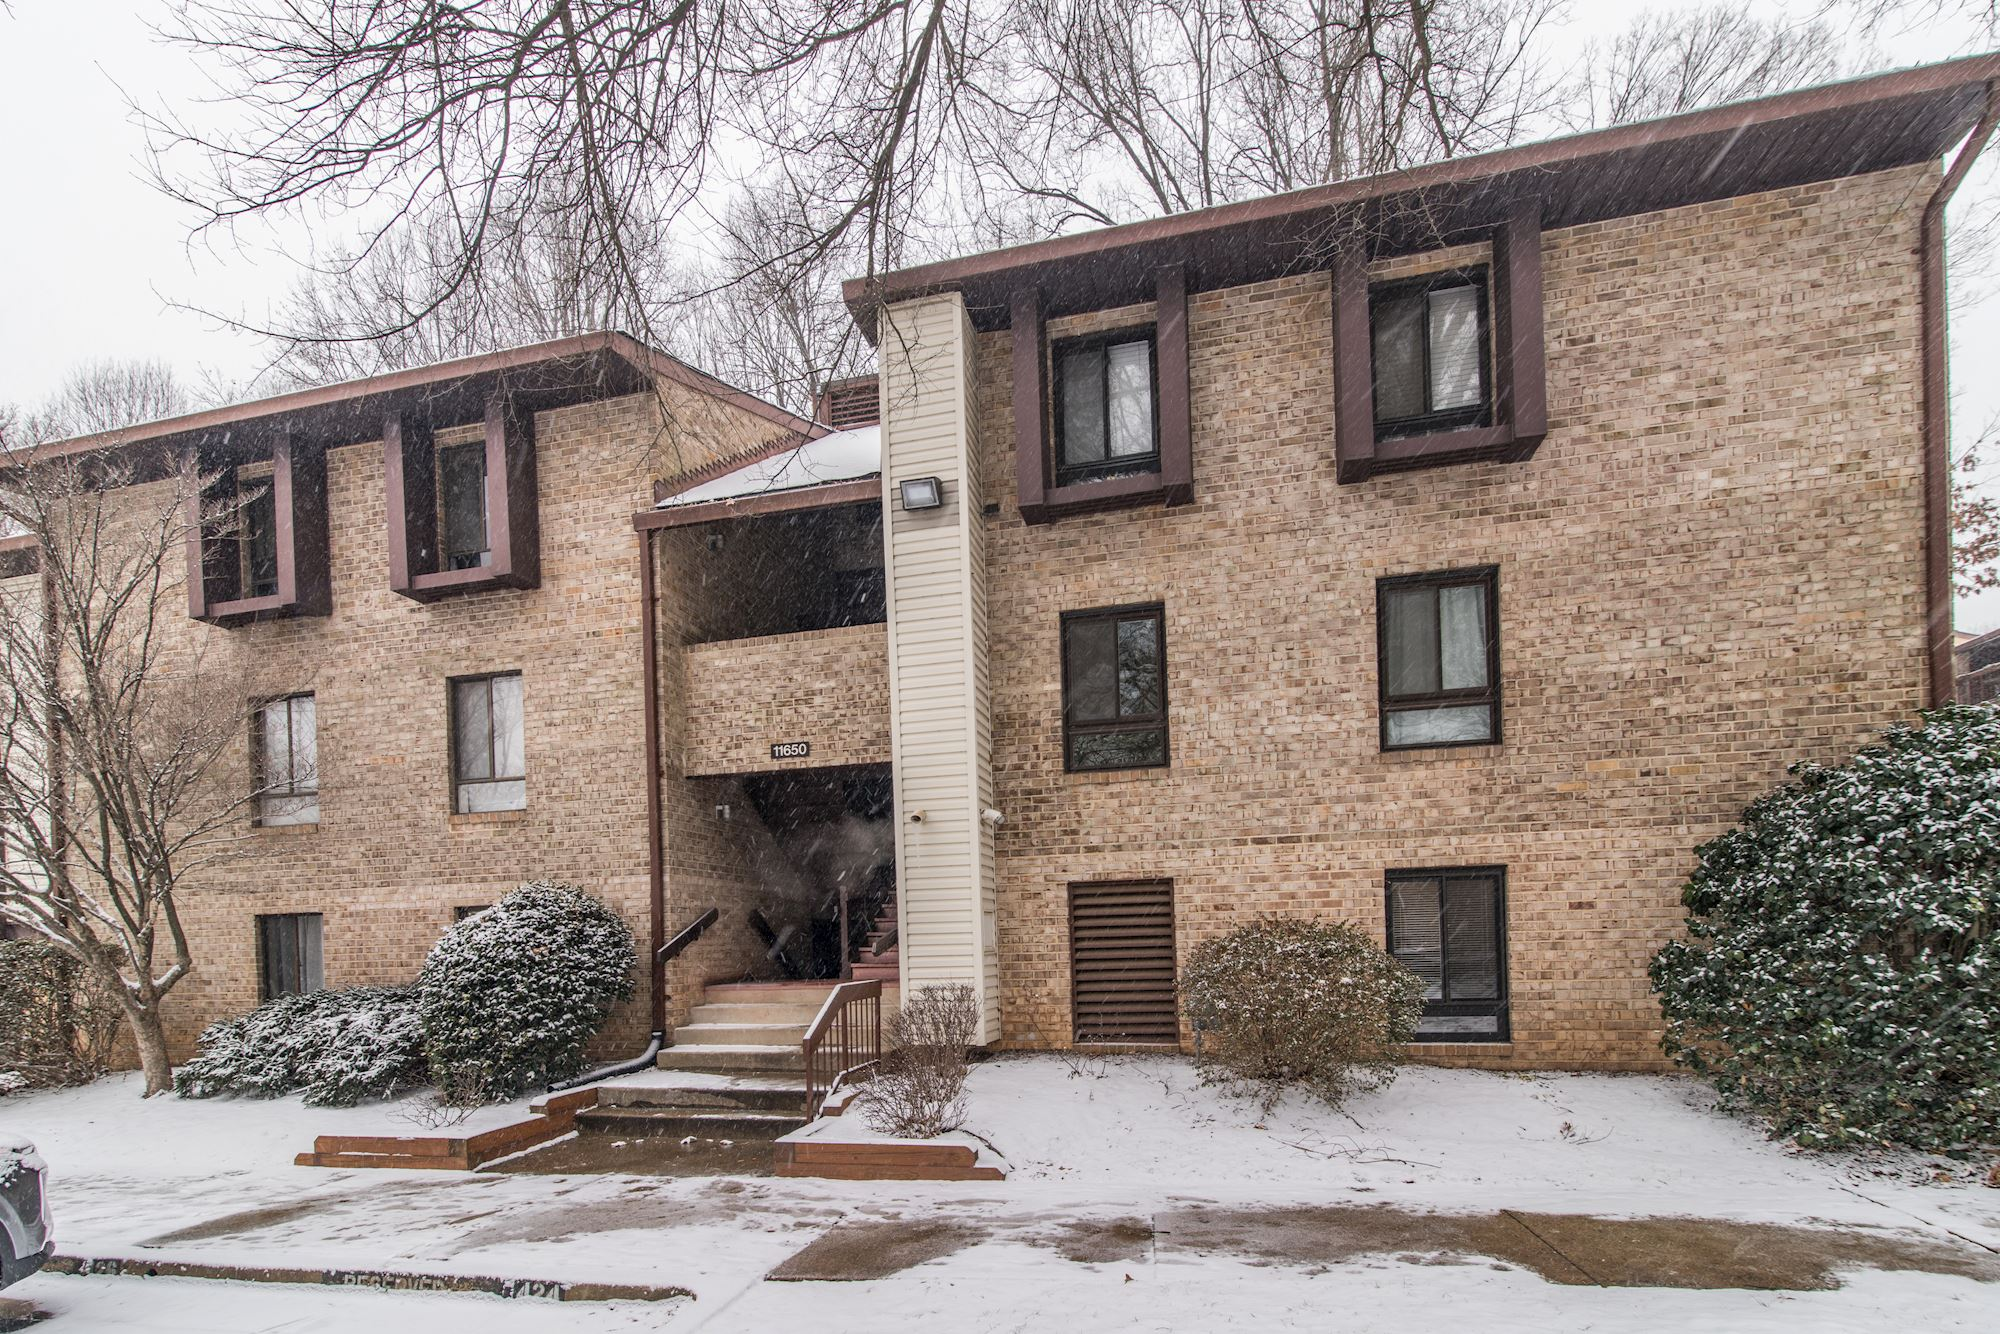 NEW LISTING: Open and Bright 2BD/2BA Condo in The Heart of Reston